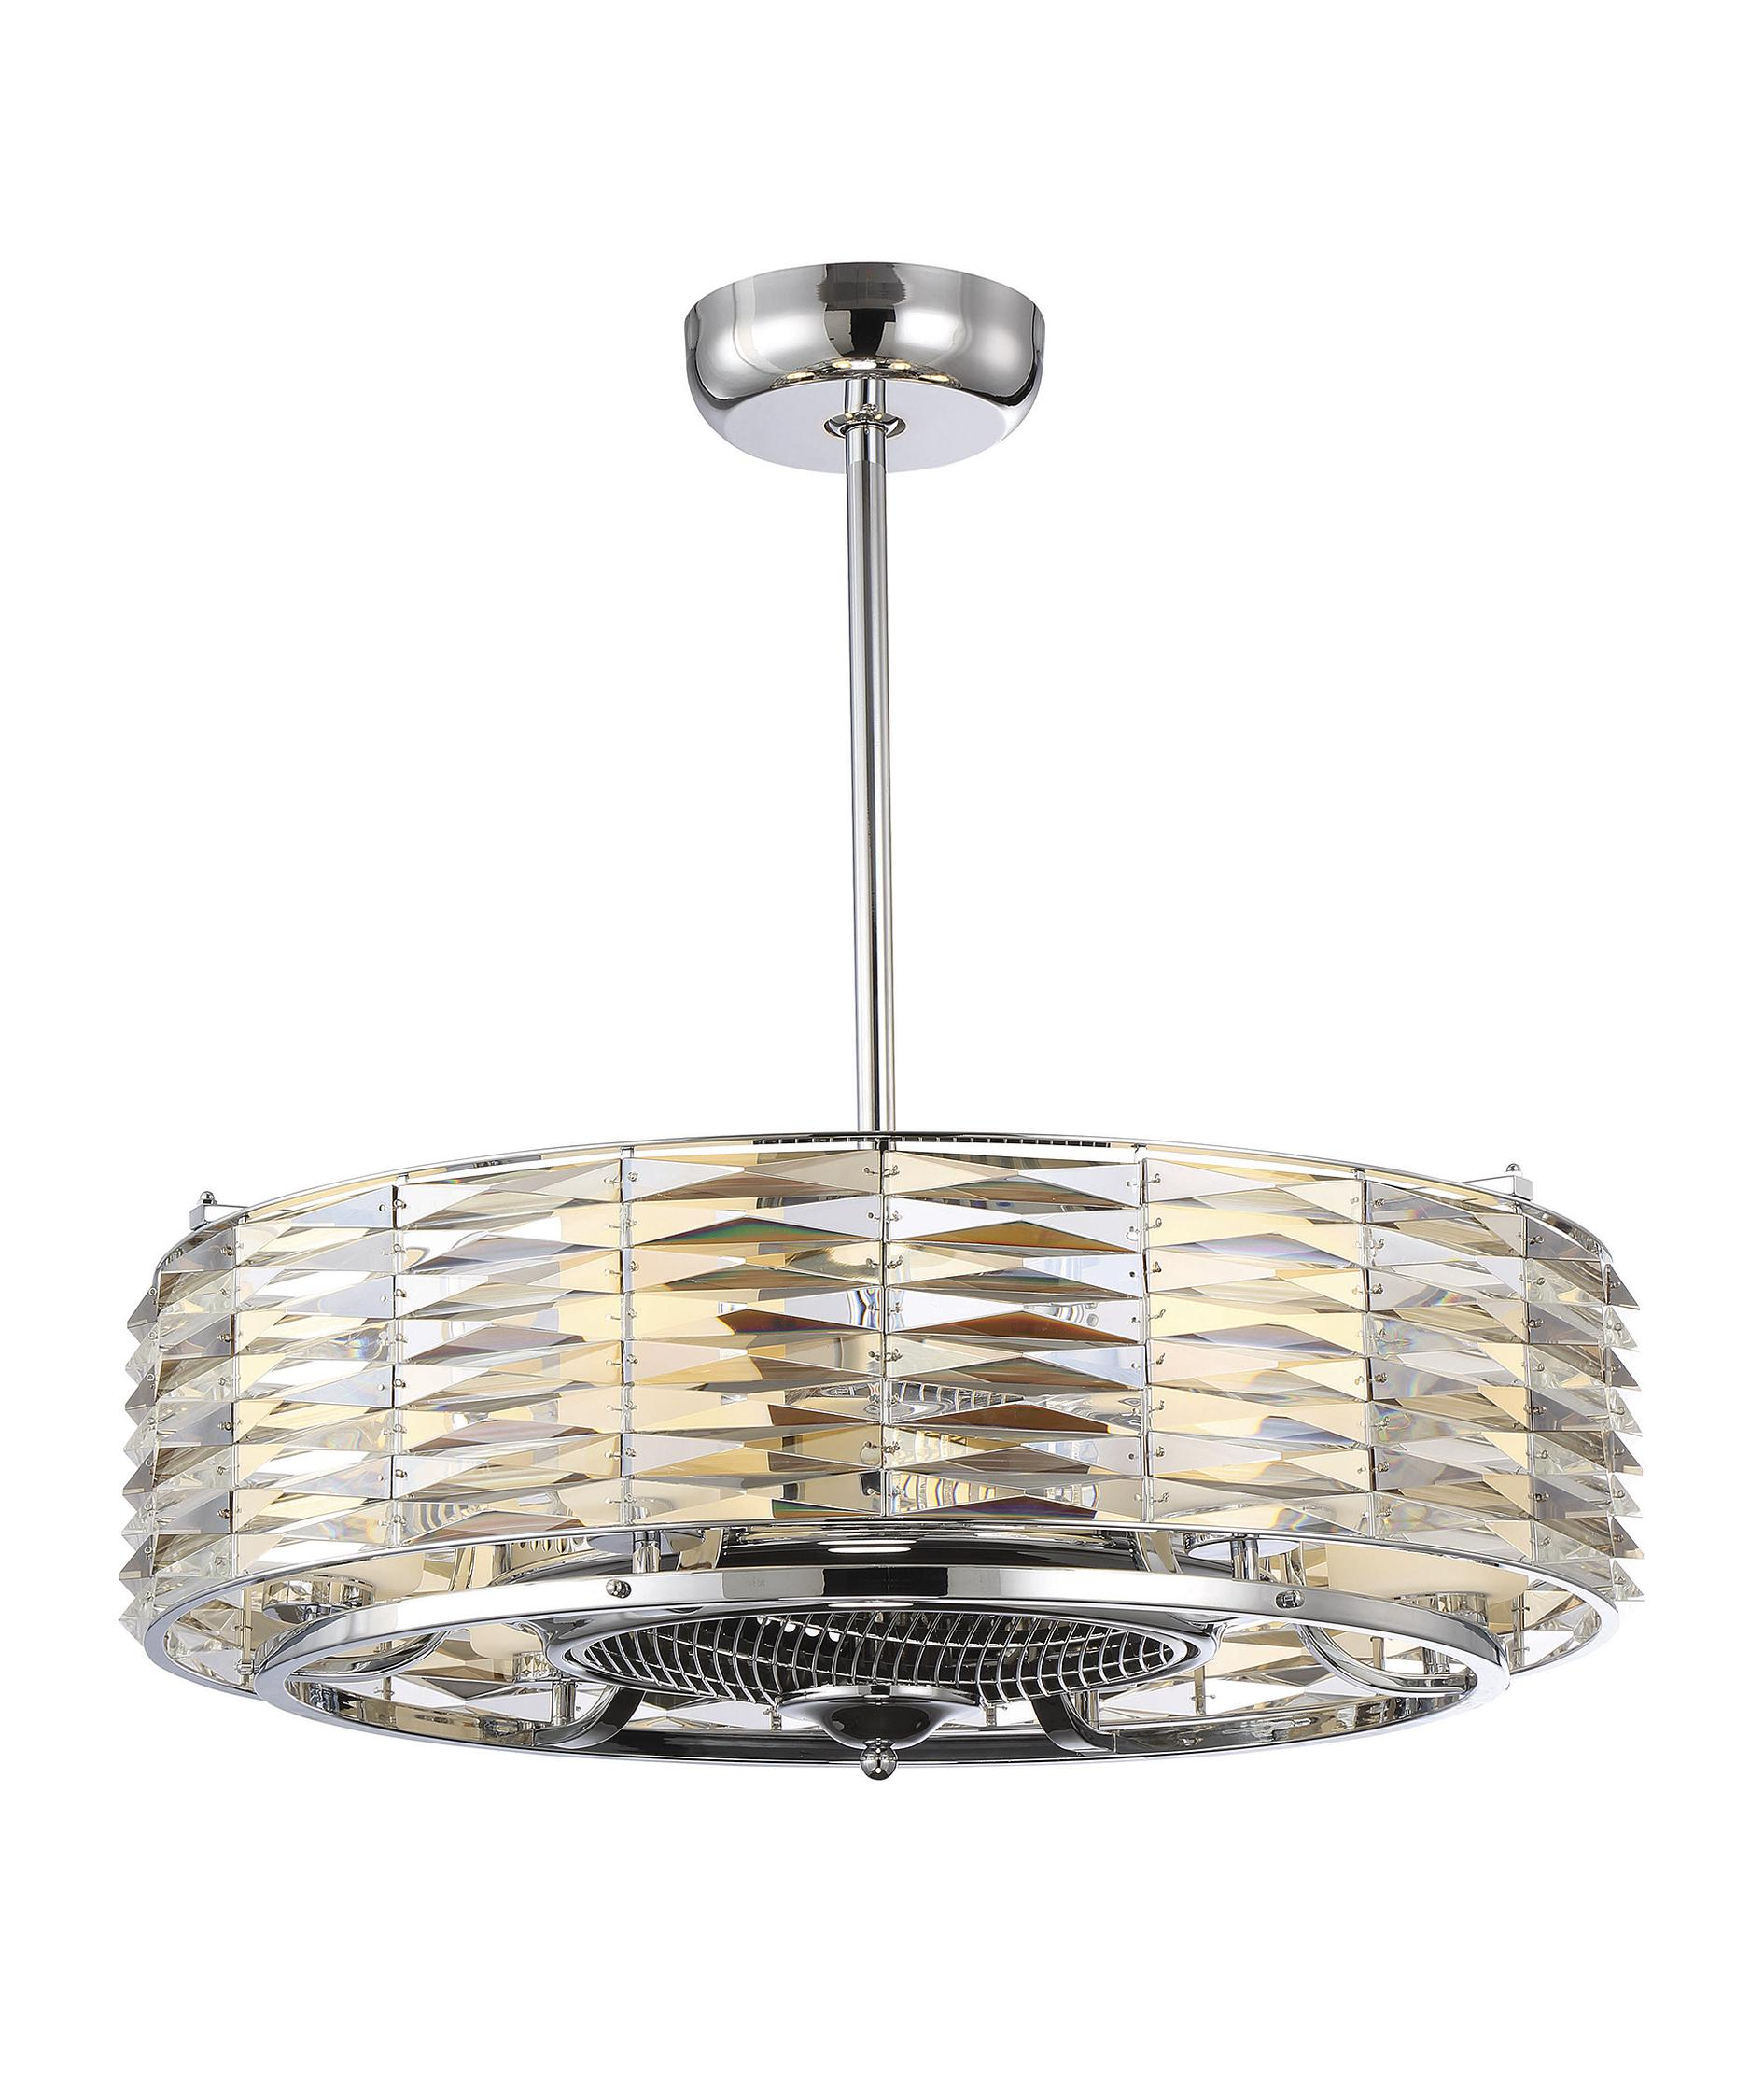 Savoy House Taurus 30 Inch Chandelier Ceiling Fan | Capitol ...:Shown in Polished Chrome finish and White Opal glass,Lighting